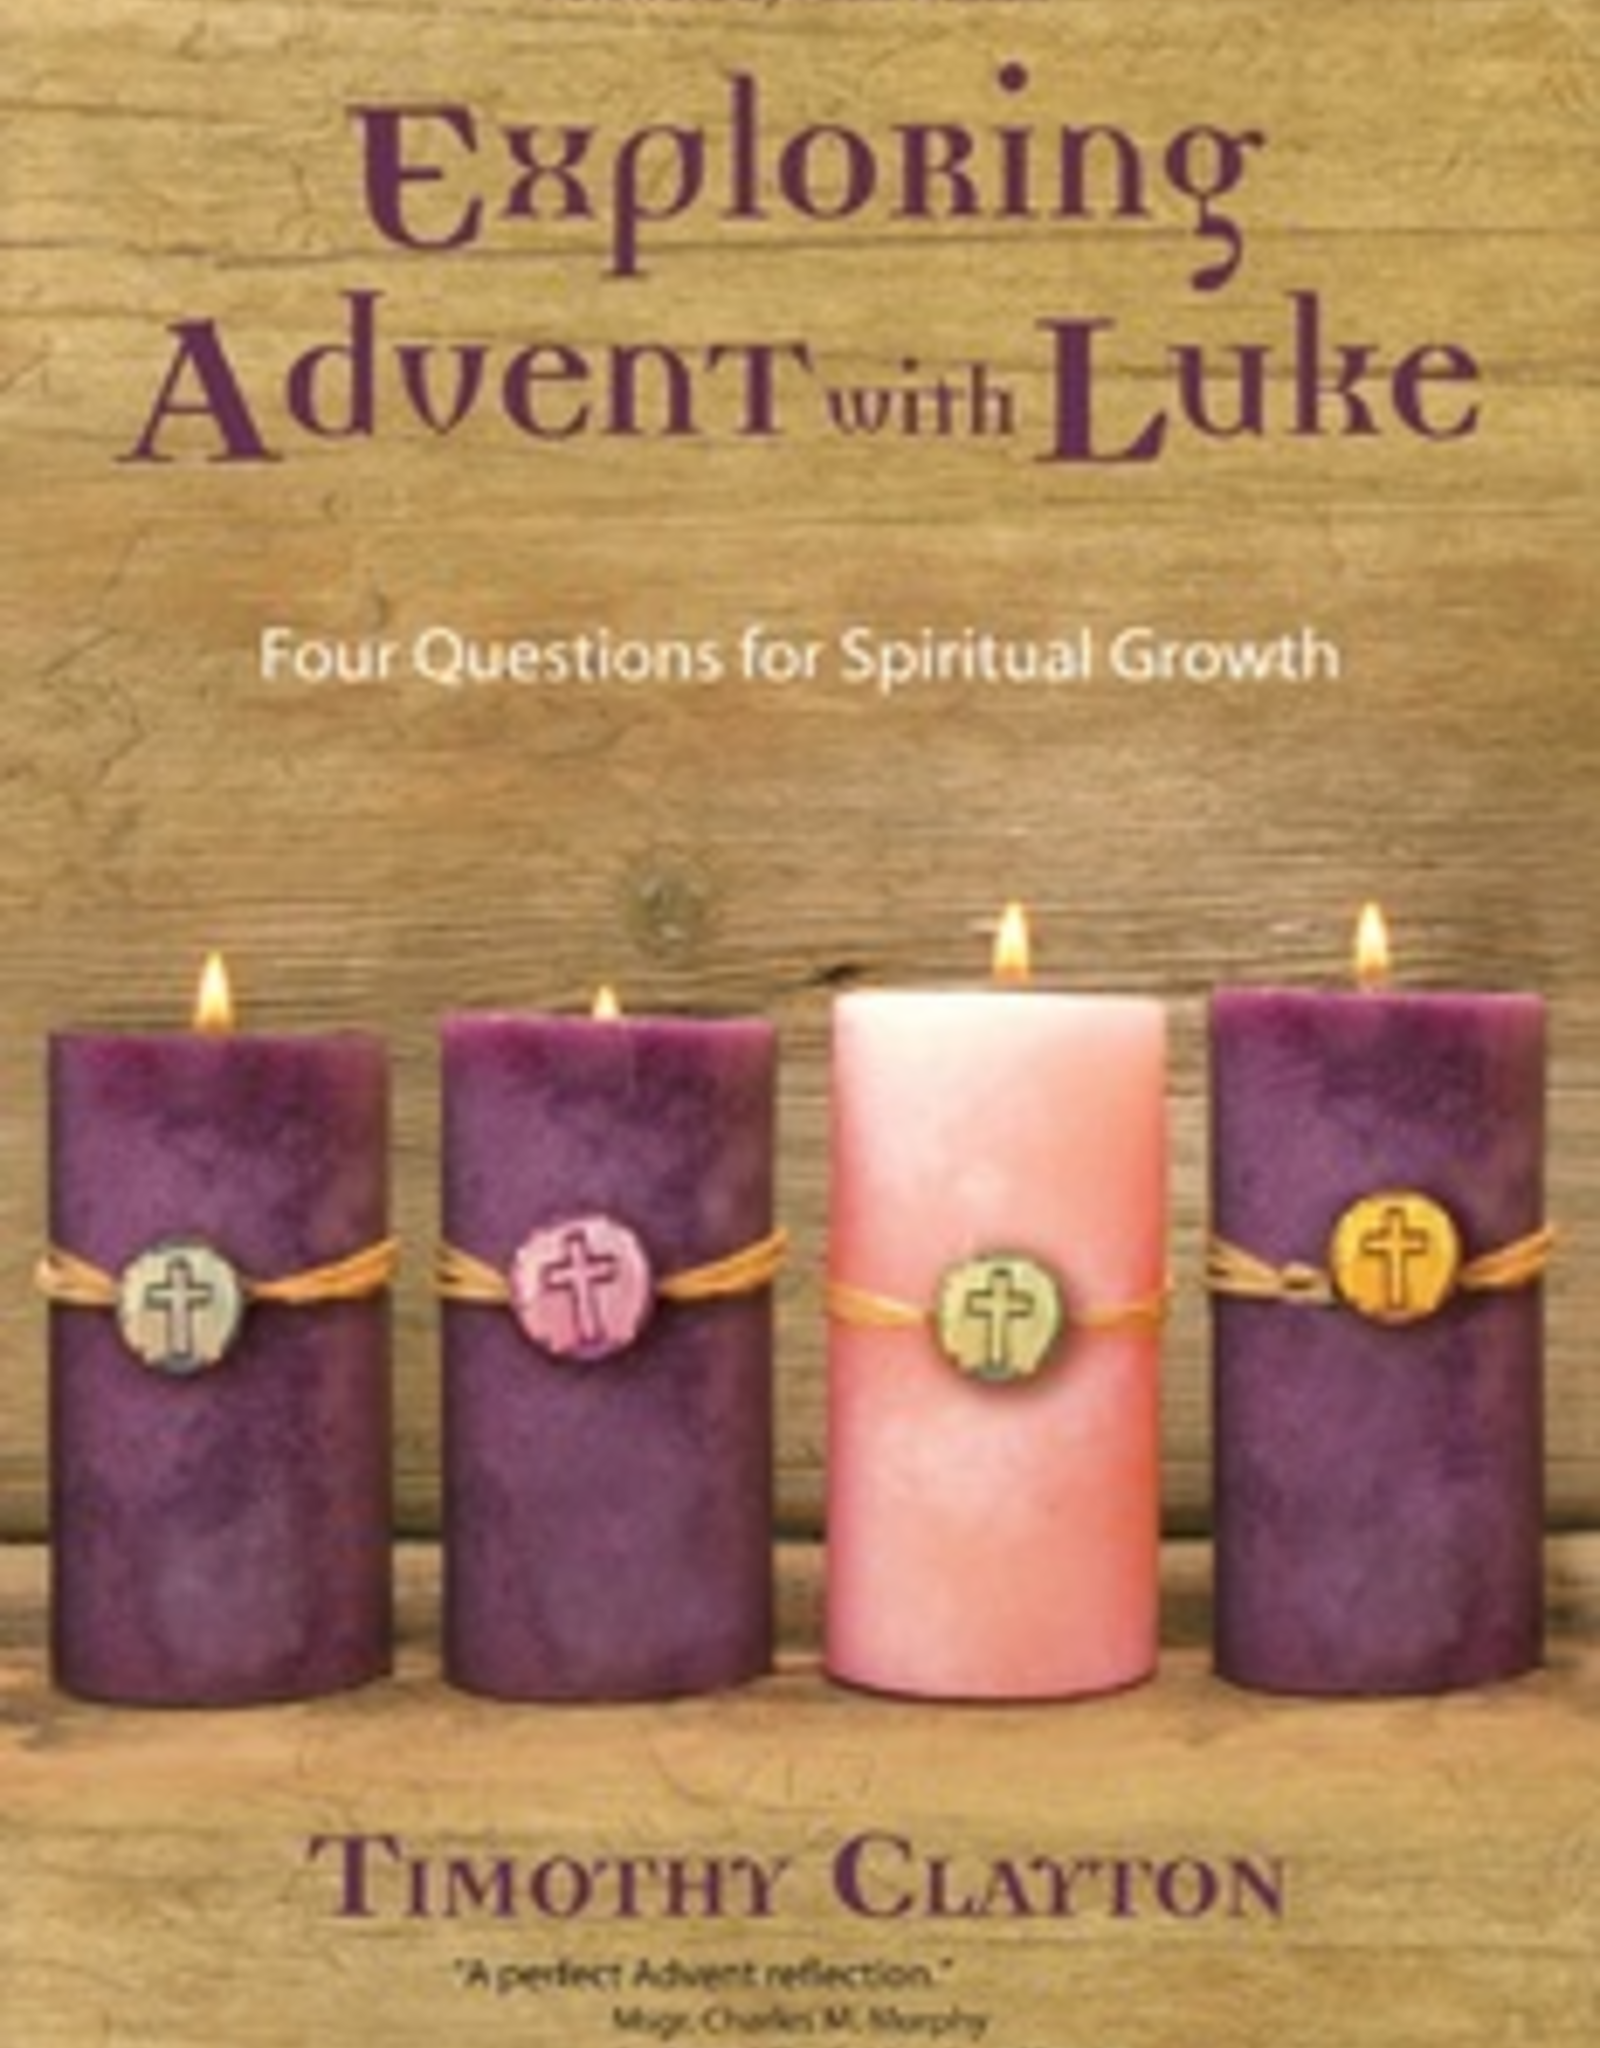 Ave Maria Press Exploring Advent with Luke:  Four Questions for Spiritual Growth, by Timothy Clayton (paperback)